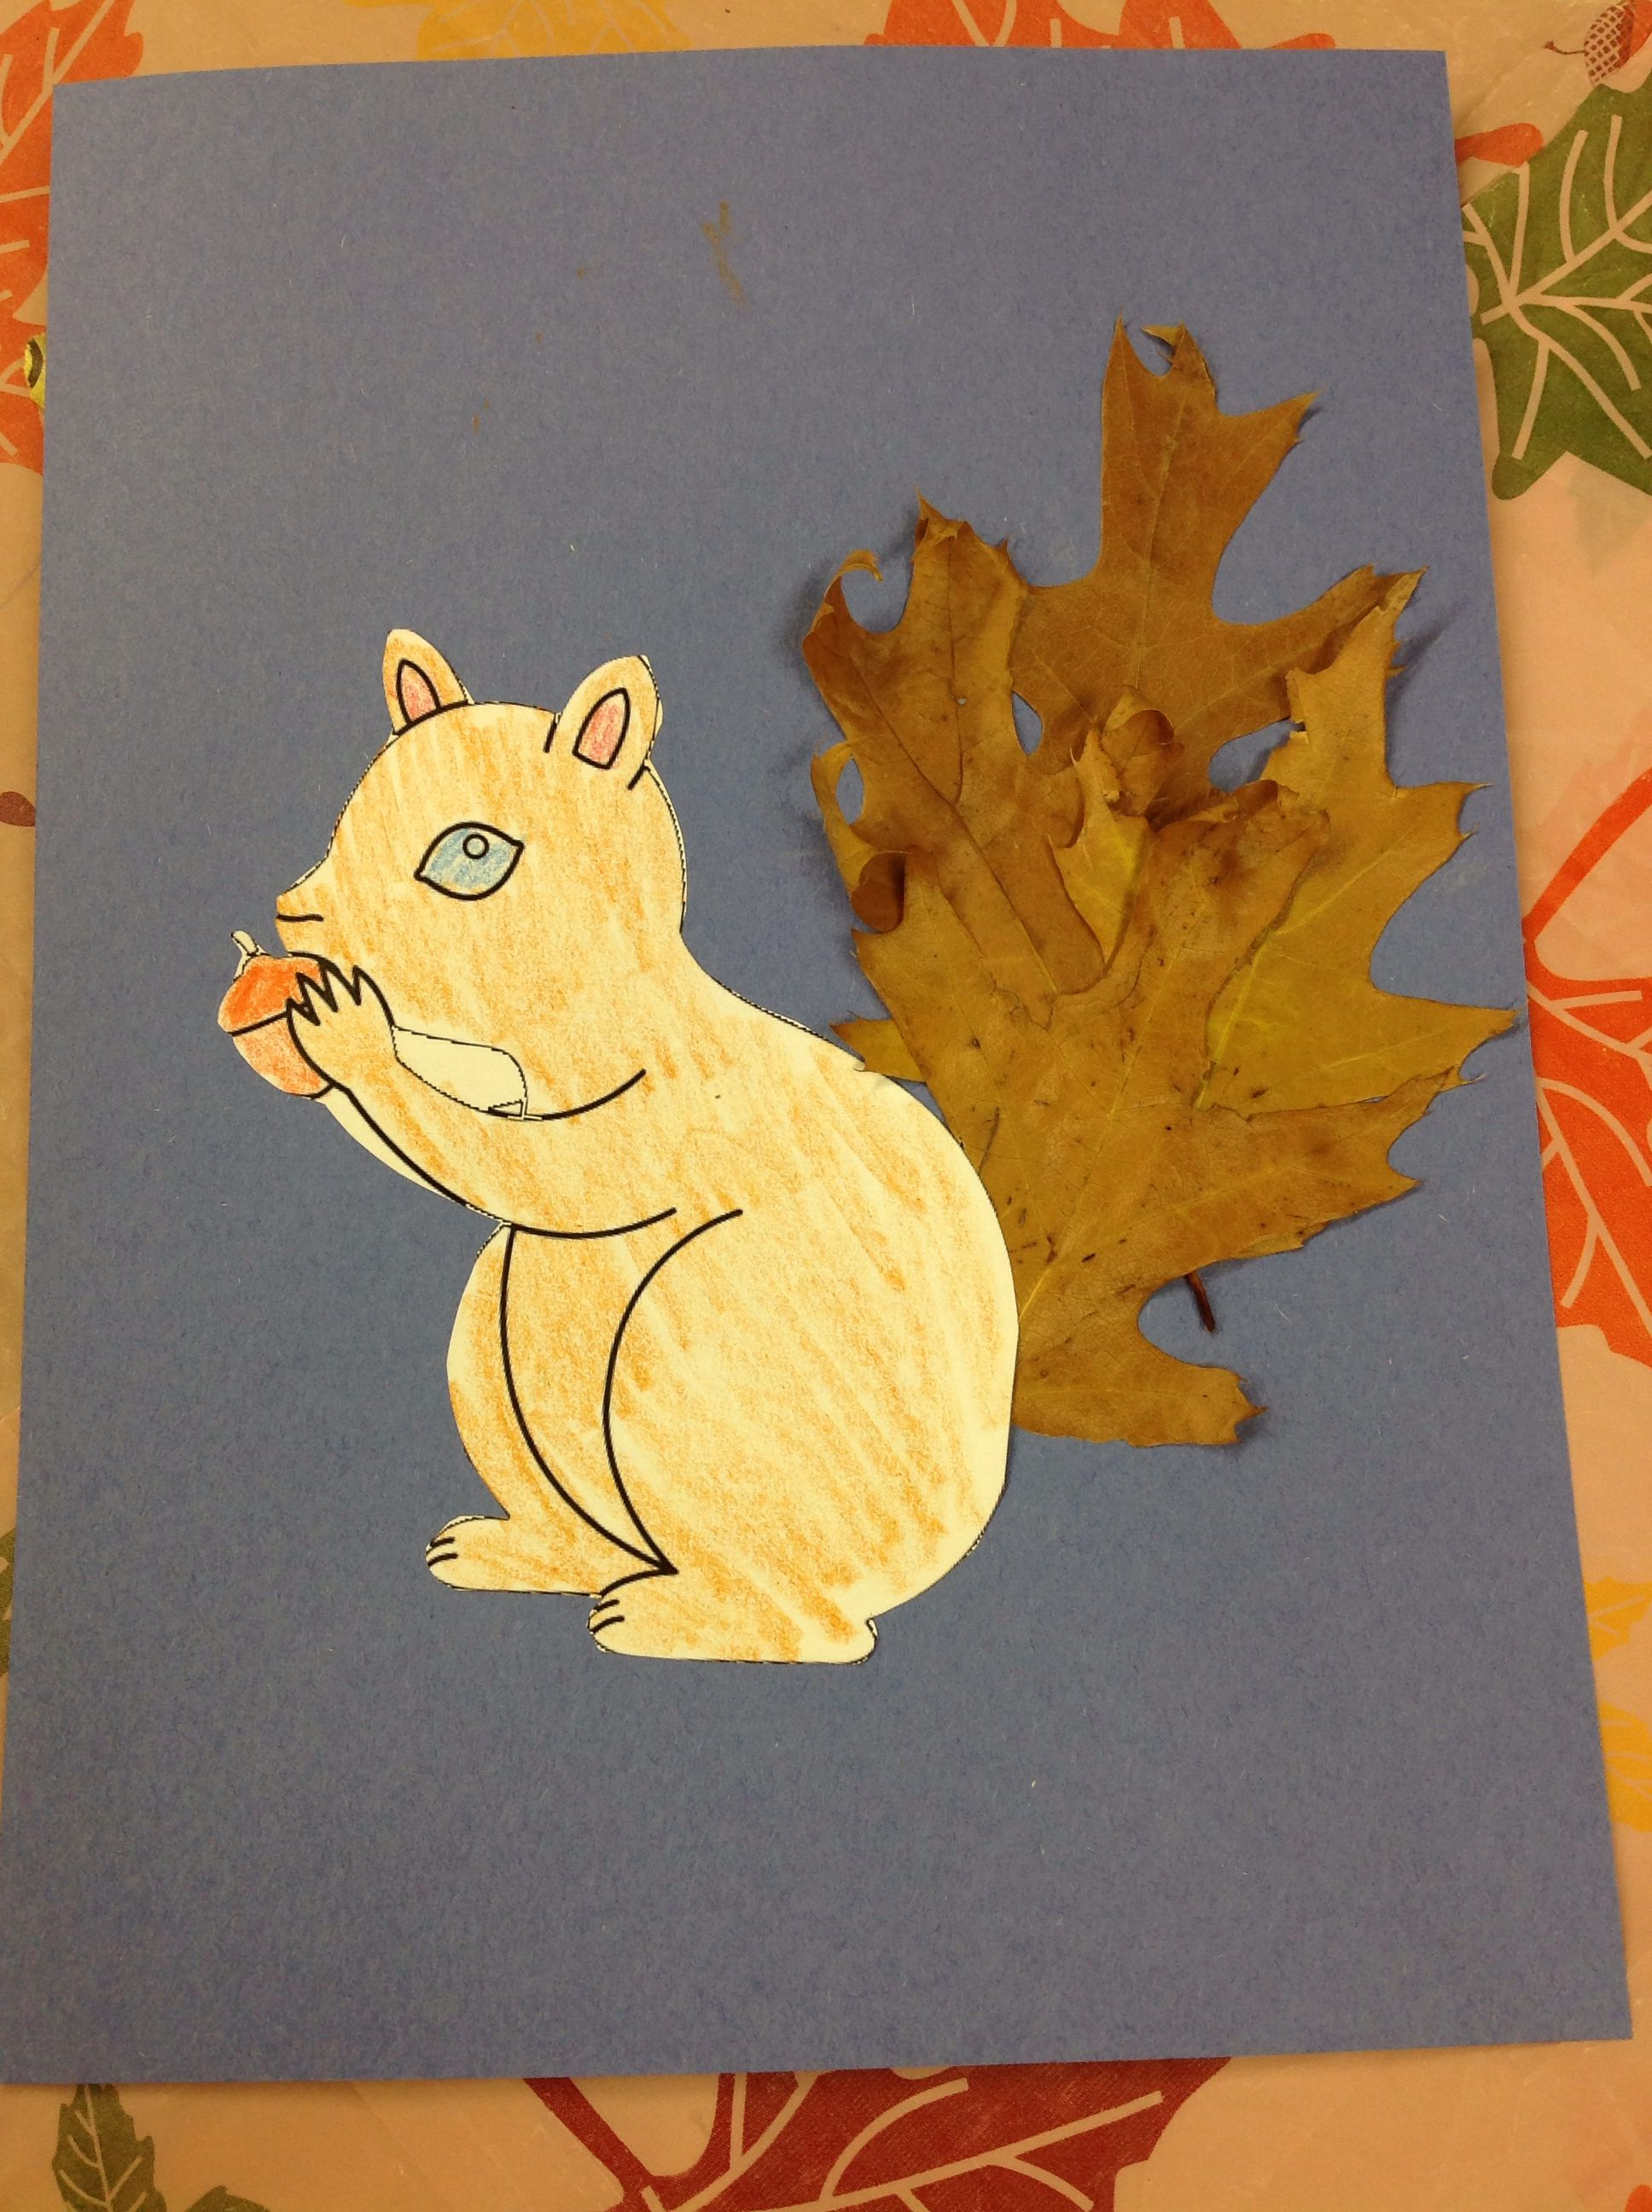 We Gave This Squirrel A Tail Made Of Fall Leaves